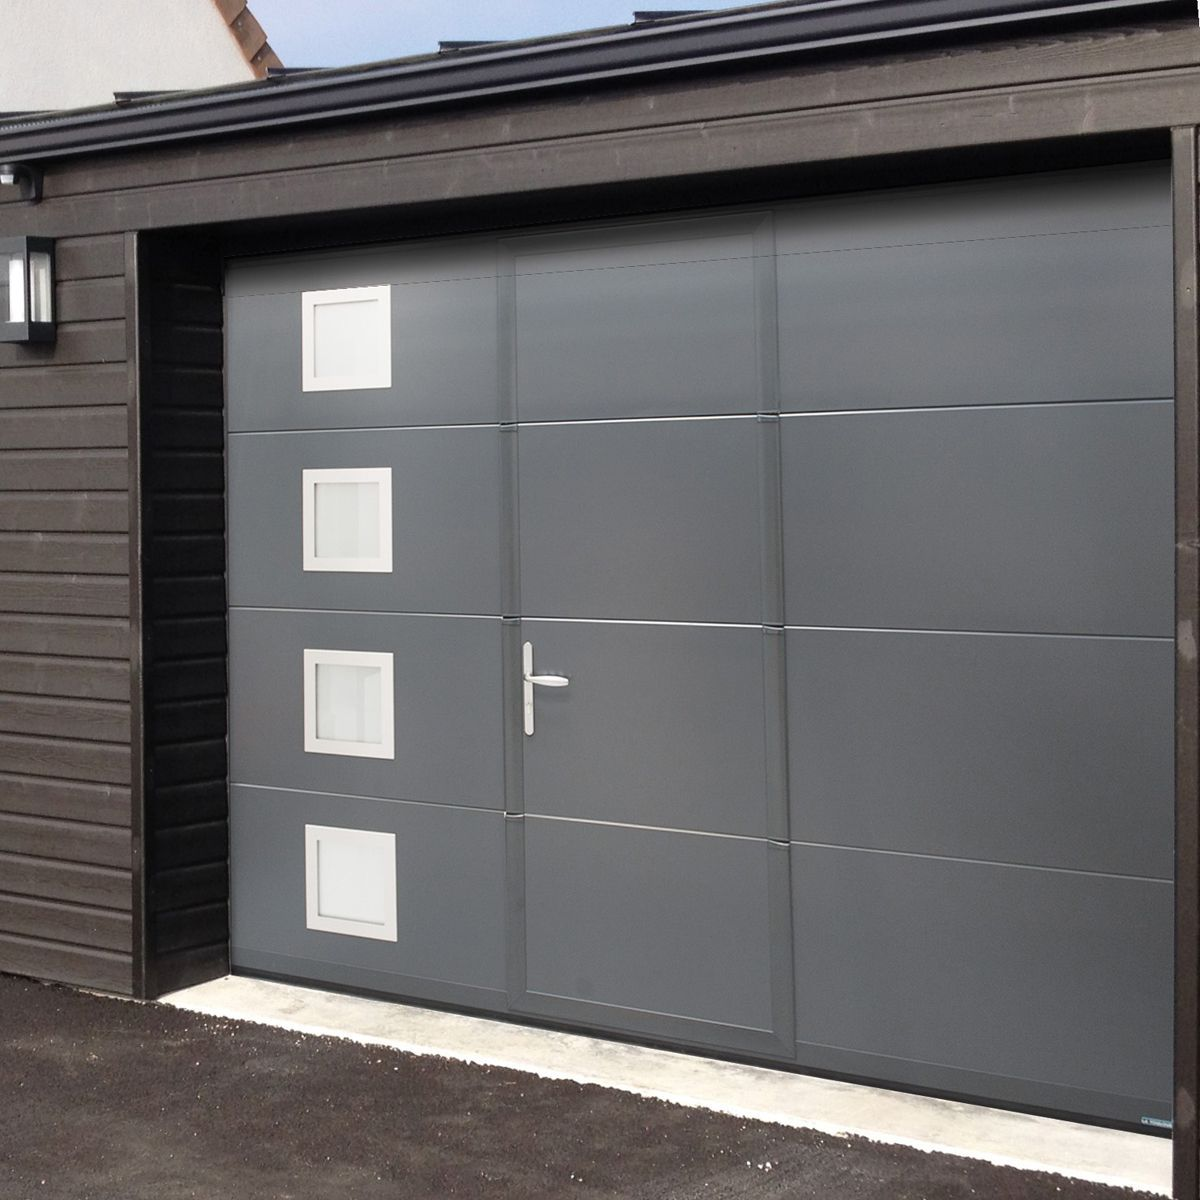 Portes de garage fabriqu es en france sur mesure isoferm for Porte de garage lille